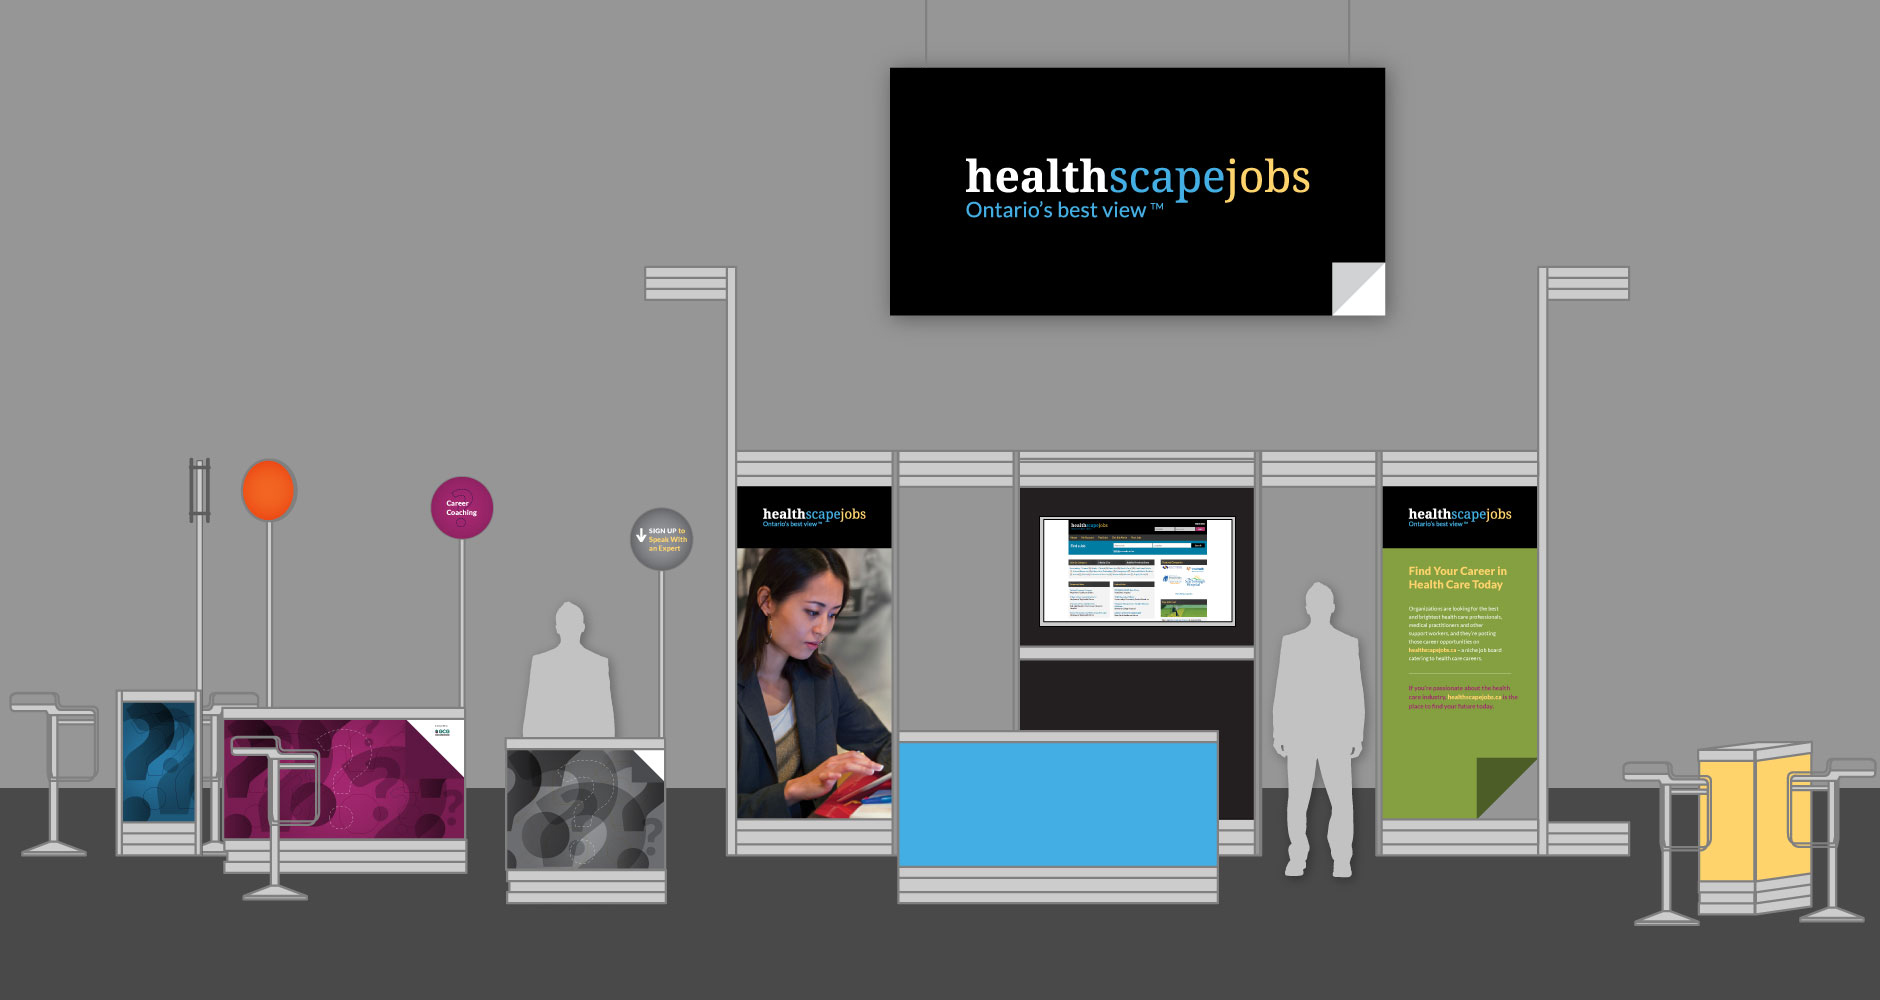 Healthscape jobs booth mockup